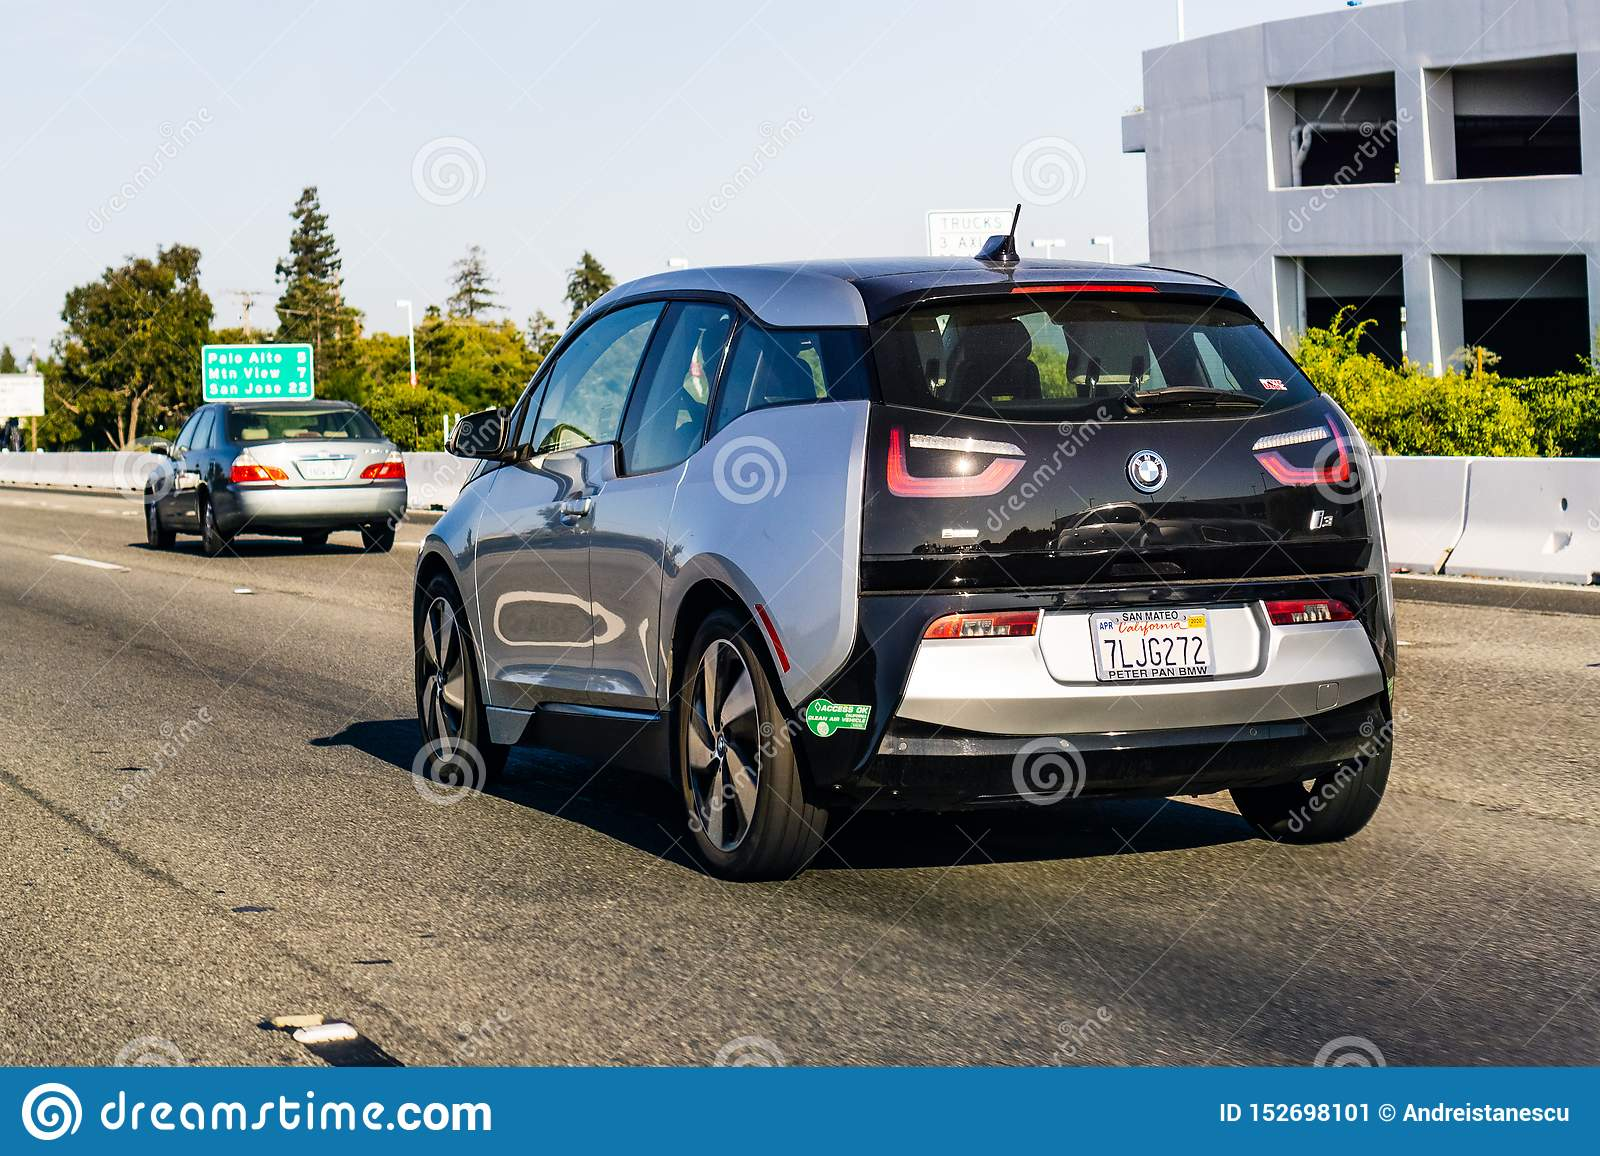 July 4 2019 Redwood City Ca Usa Bmw I3 Driving On The Freeway In San Francisco Bay Area Editorial Photo Image Of Journey Freeway 152698101